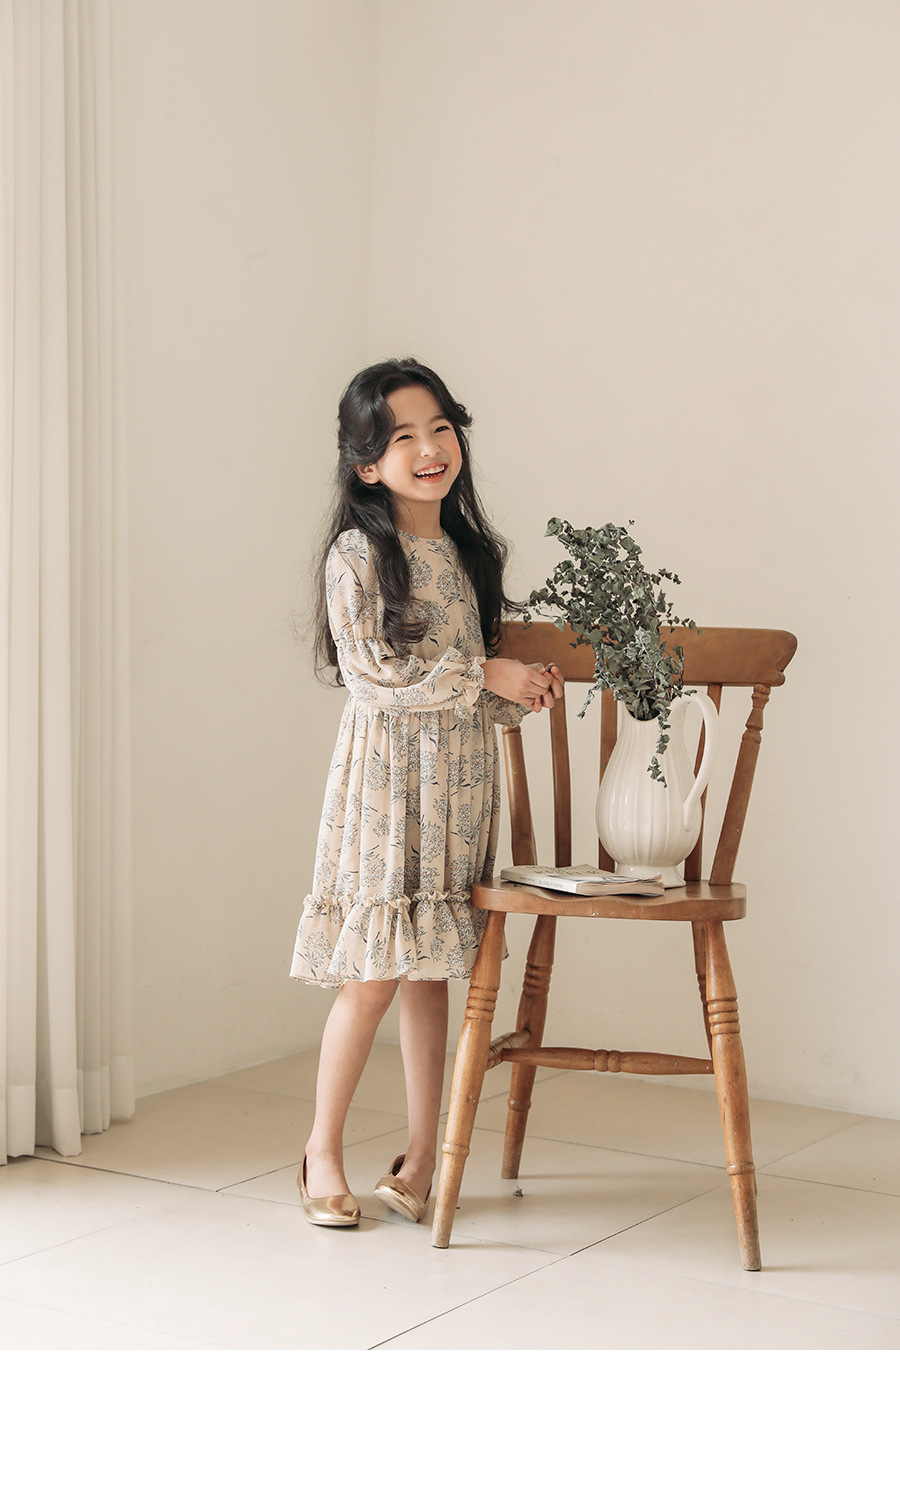 chiffon floral pattern dresses for girls of 12 10 11 14 2 4 6 years old High Quality children dresses 8 year long sleeve clothes 5 7 9 13 15 16 Years little teenage girls spring dresses for girls children girl spring dress (1)